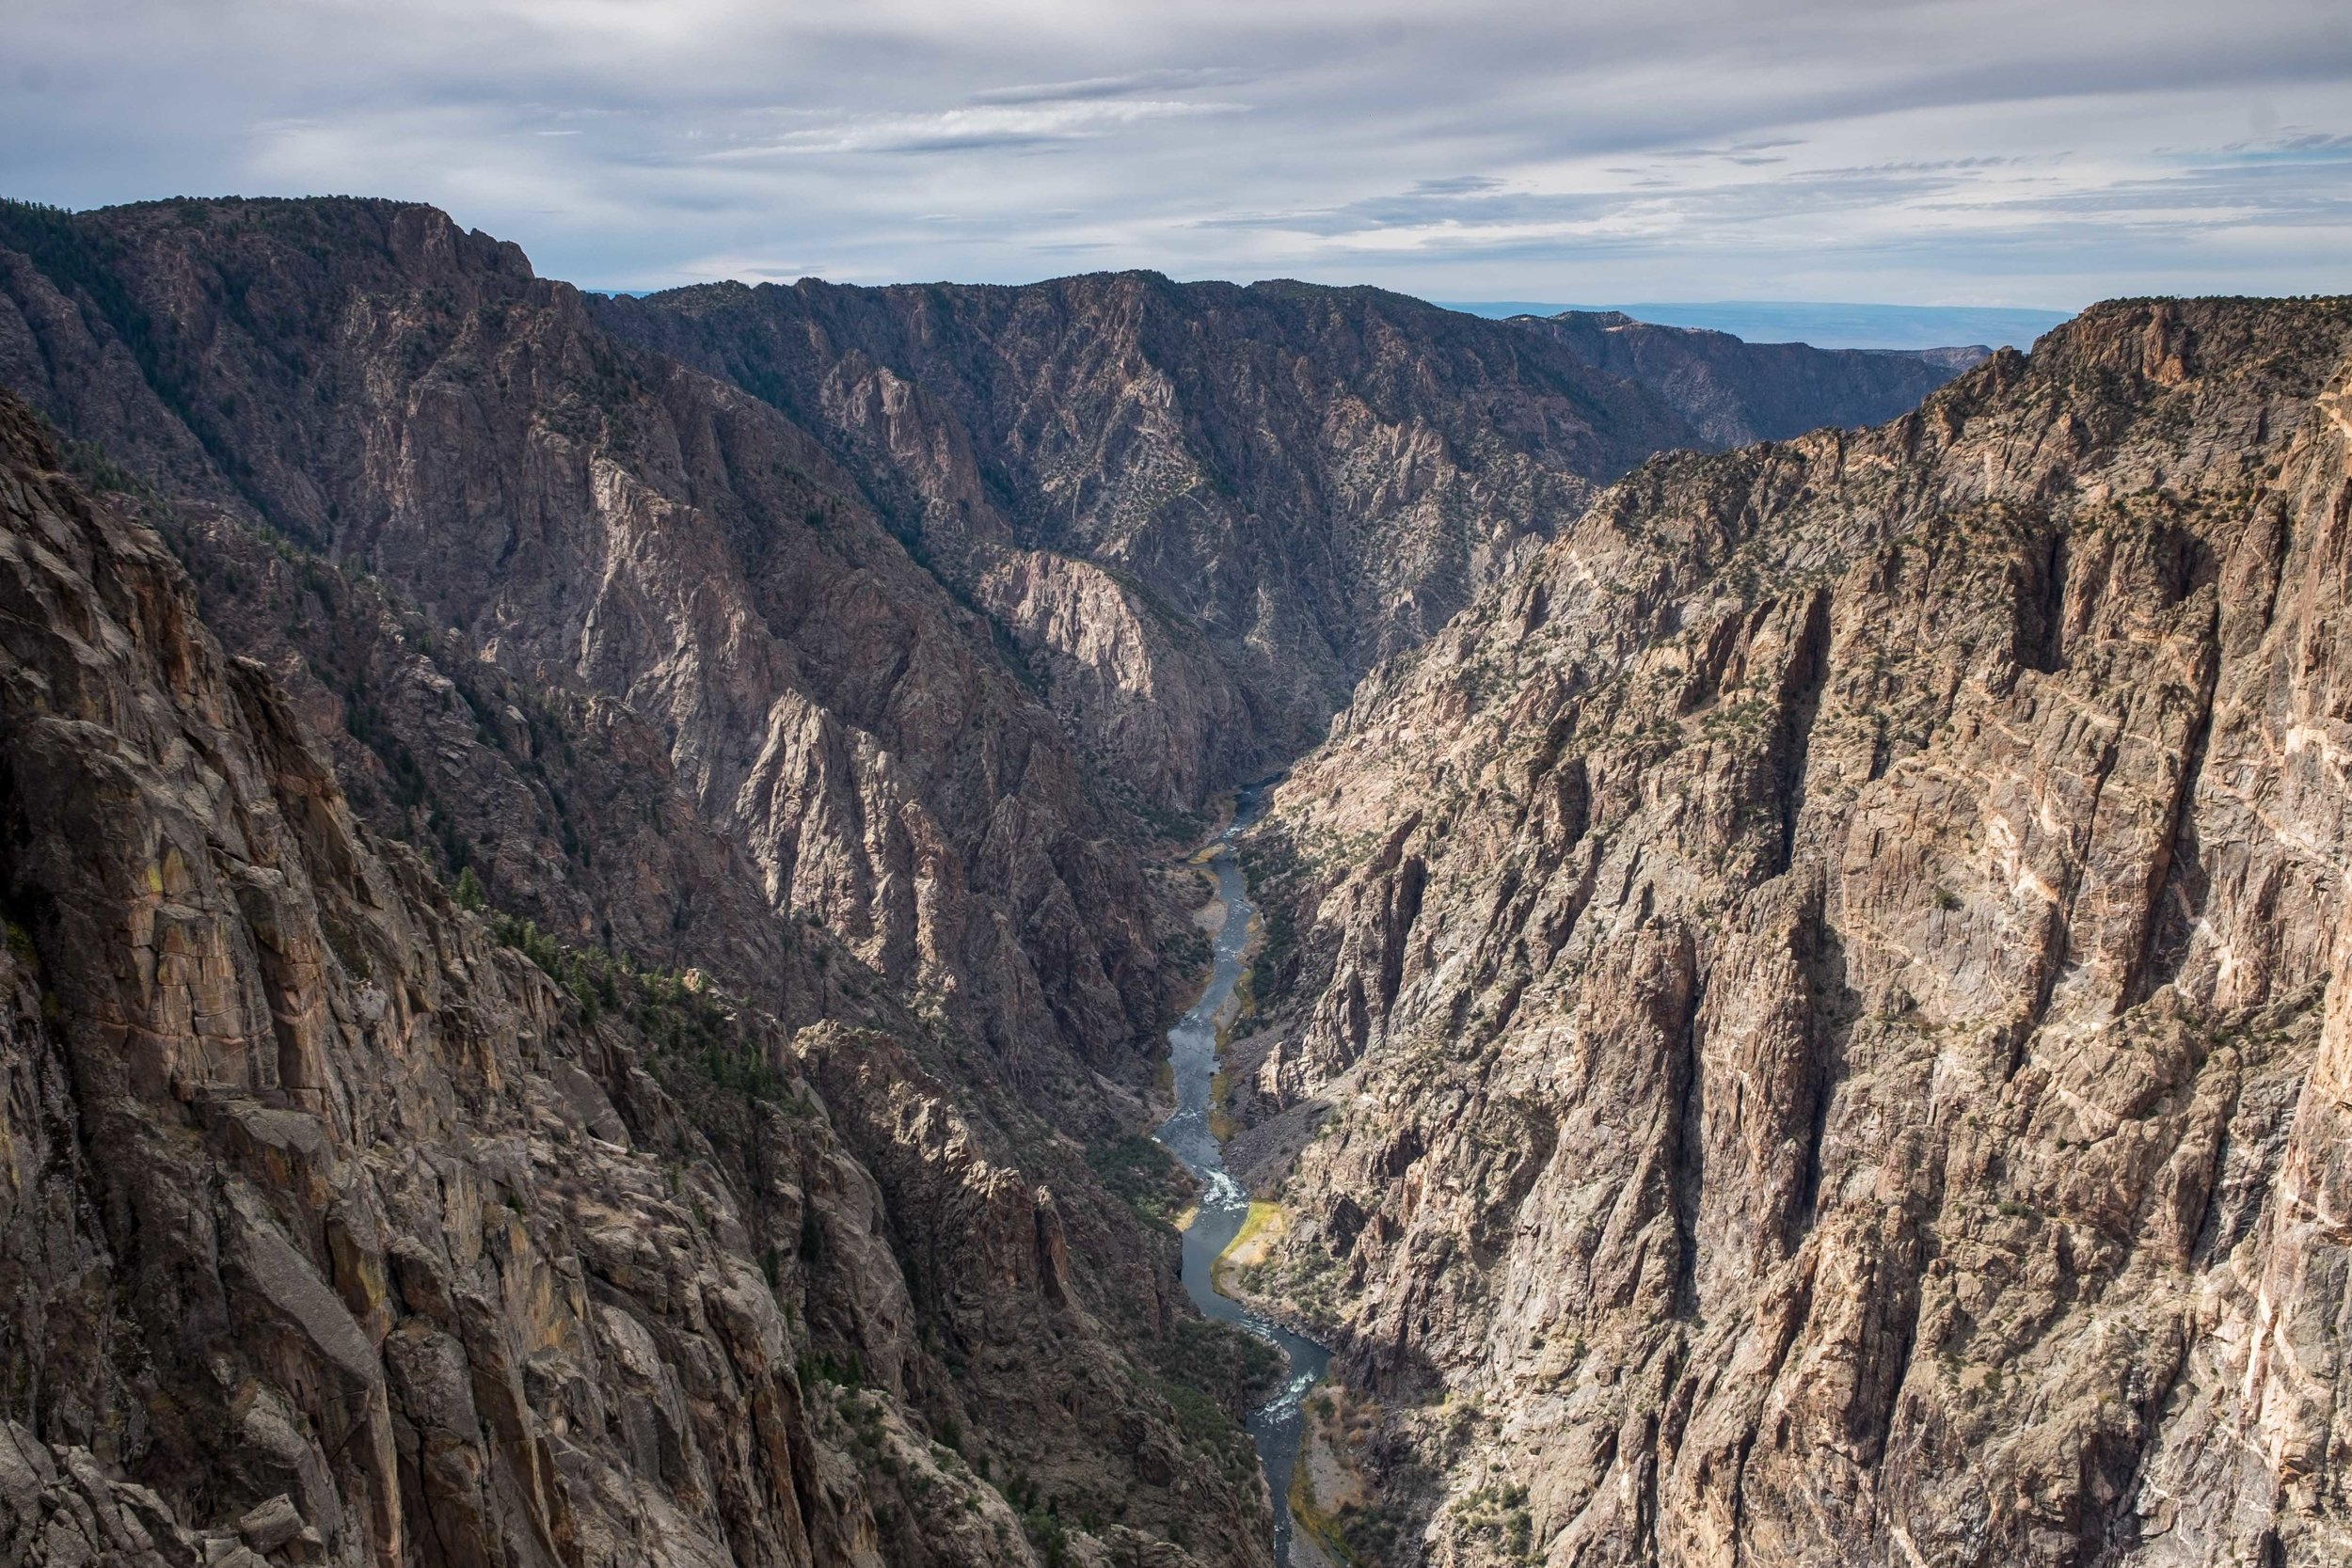 Looking straight down the canyon walls to the Gunnison River below. Taken at Dragon Point, one of my favorite views in the entire canyon.